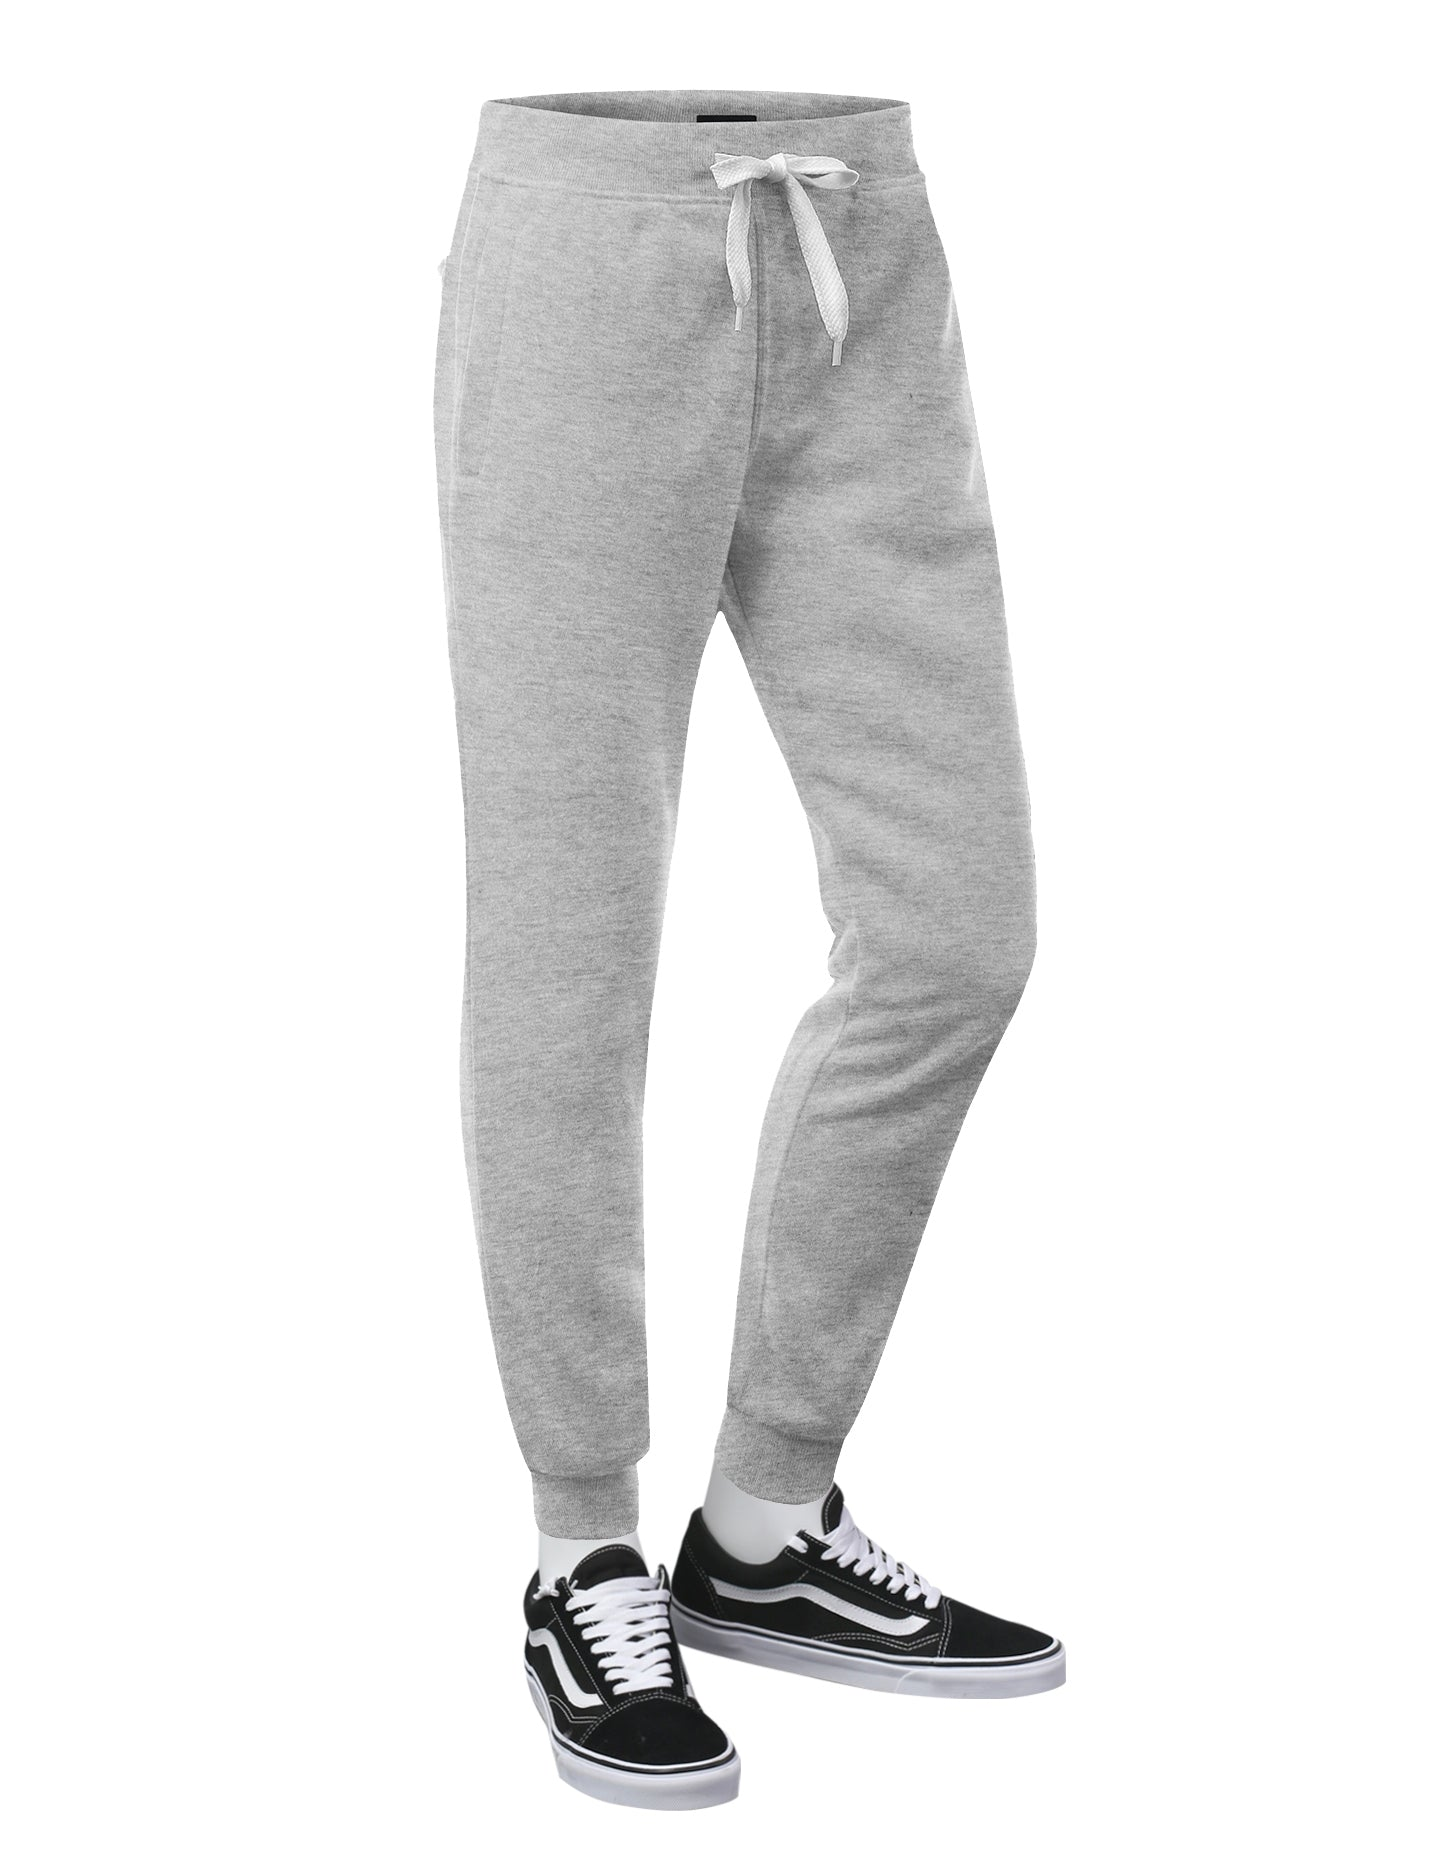 HGRAY Basic Fleece Jogger Sweatpants - URBANCREWS